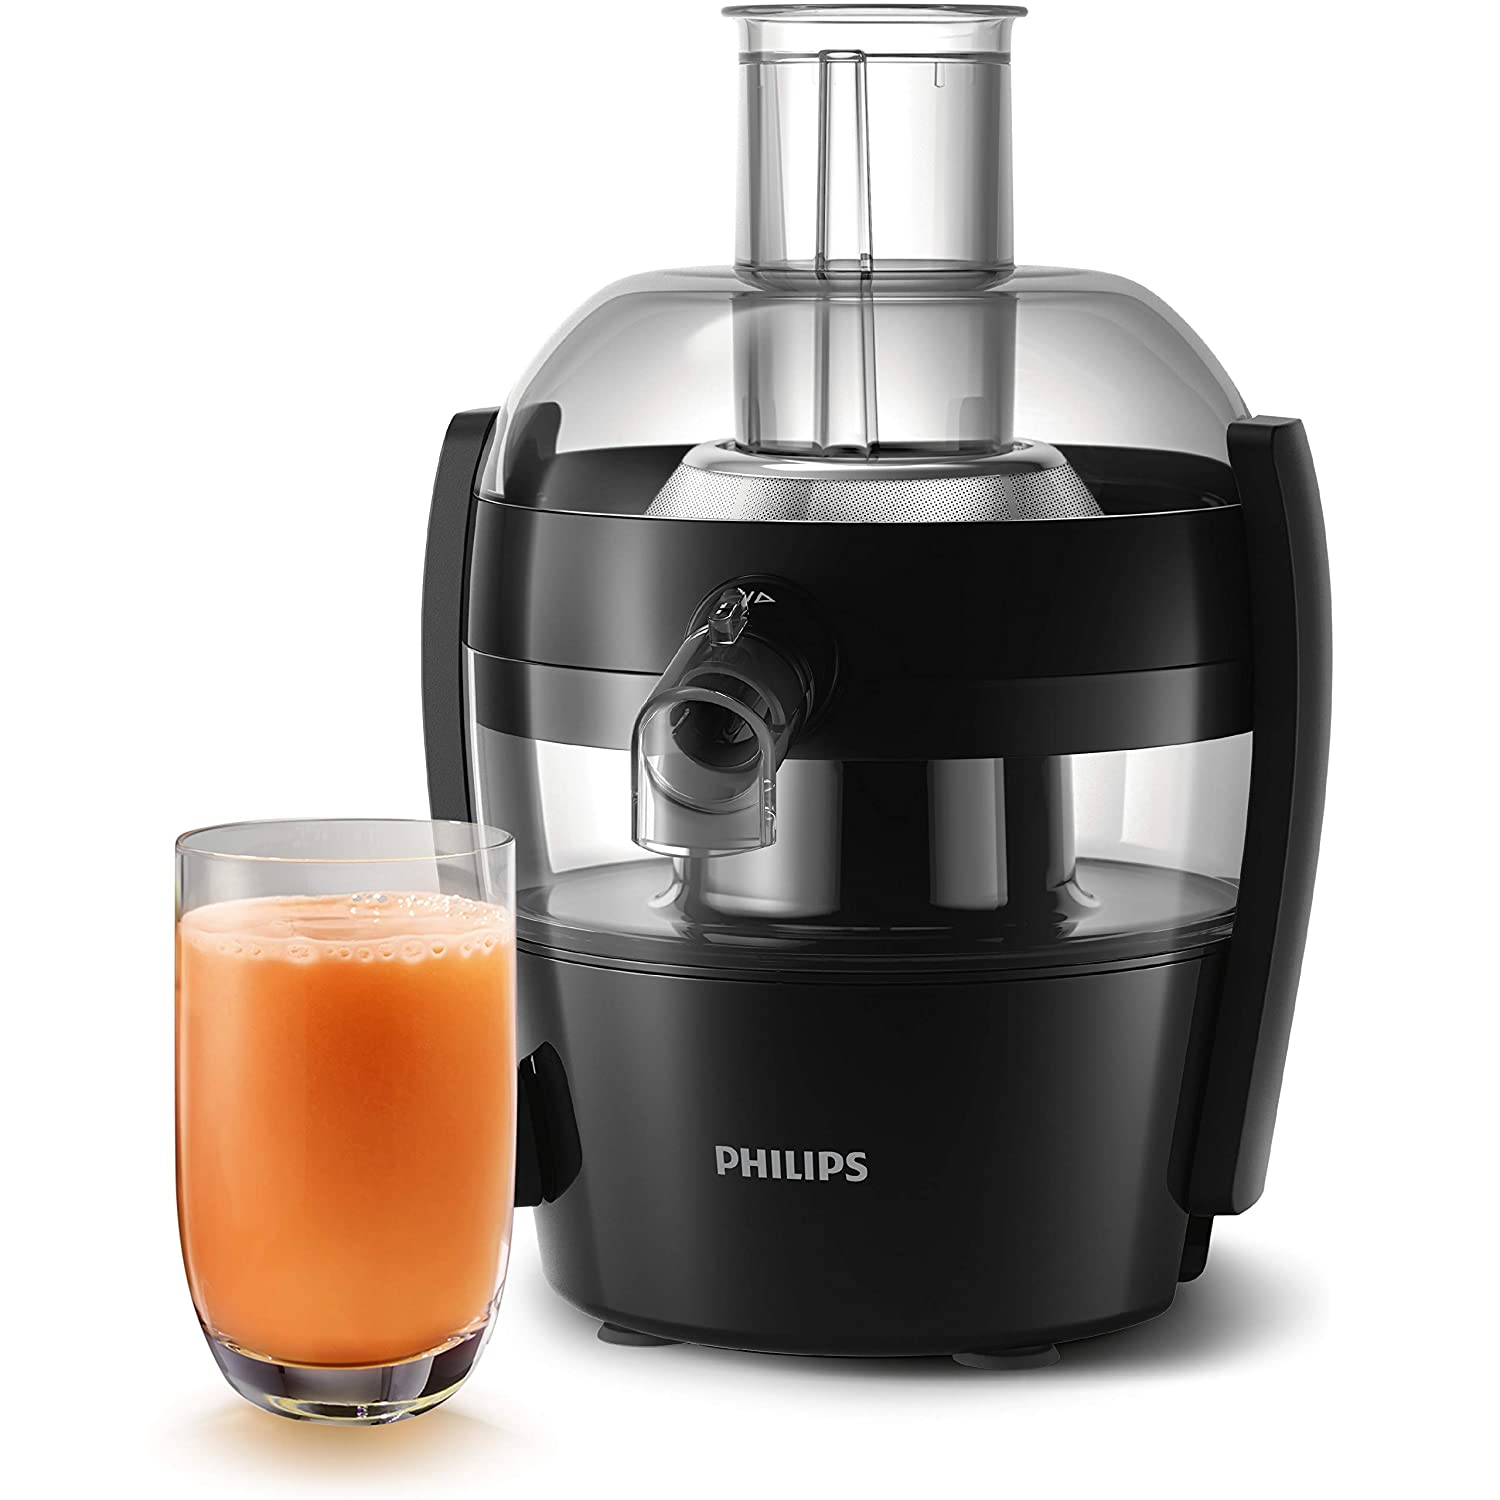 A black color philips juicer